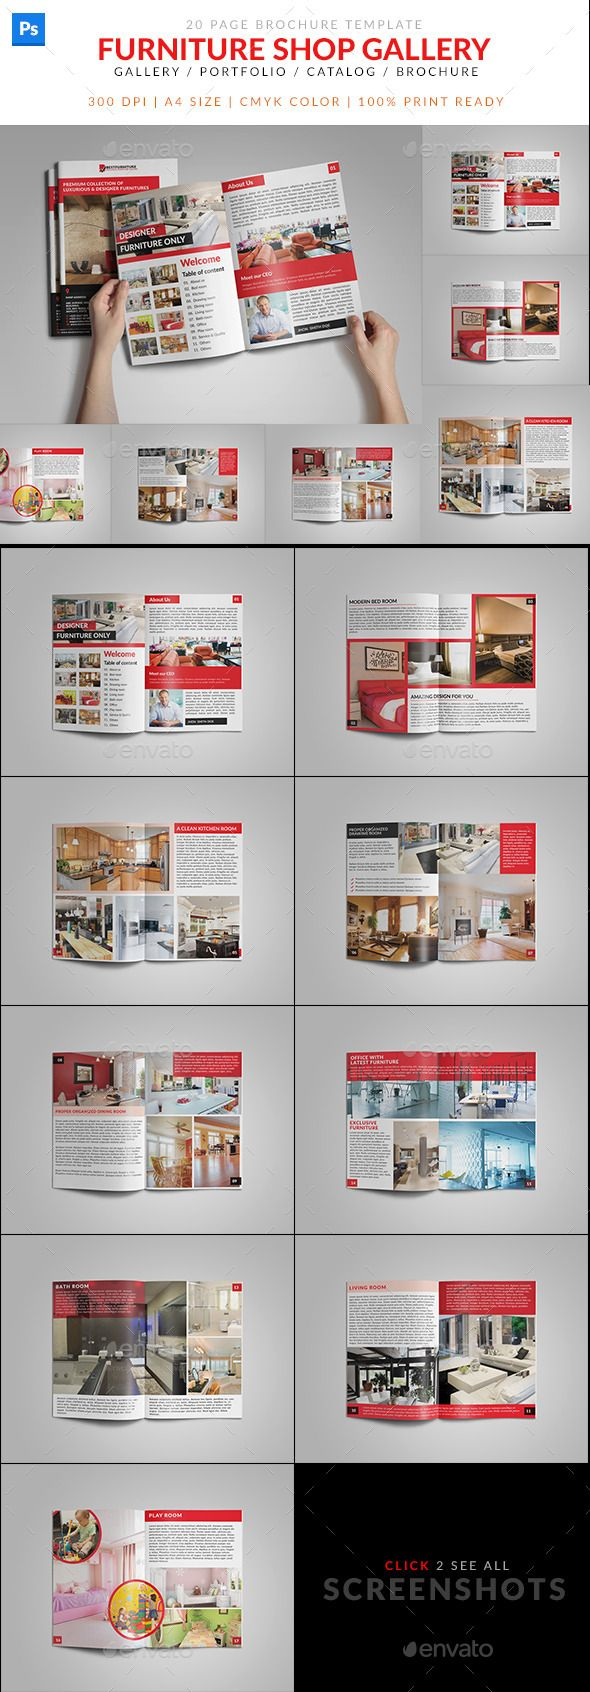 Furniture Shop Product Catalog Brochure | Shops, Furniture ...